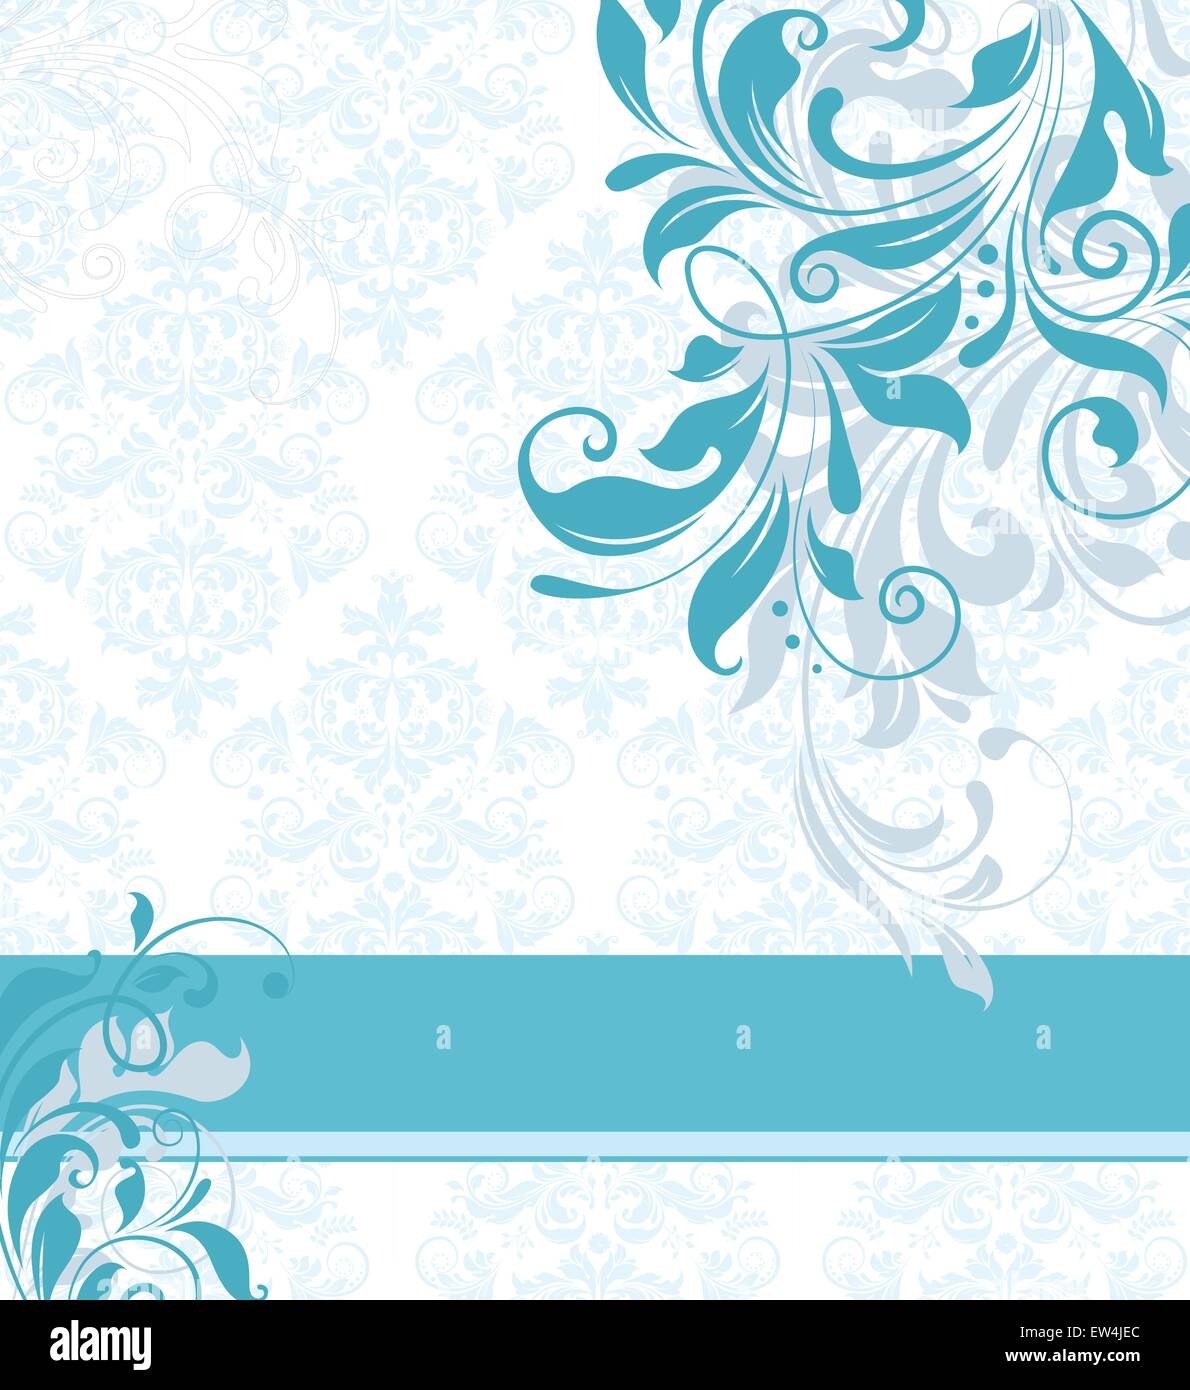 https www alamy com stock photo vintage invitation card with ornate elegant abstract floral design 84310196 html